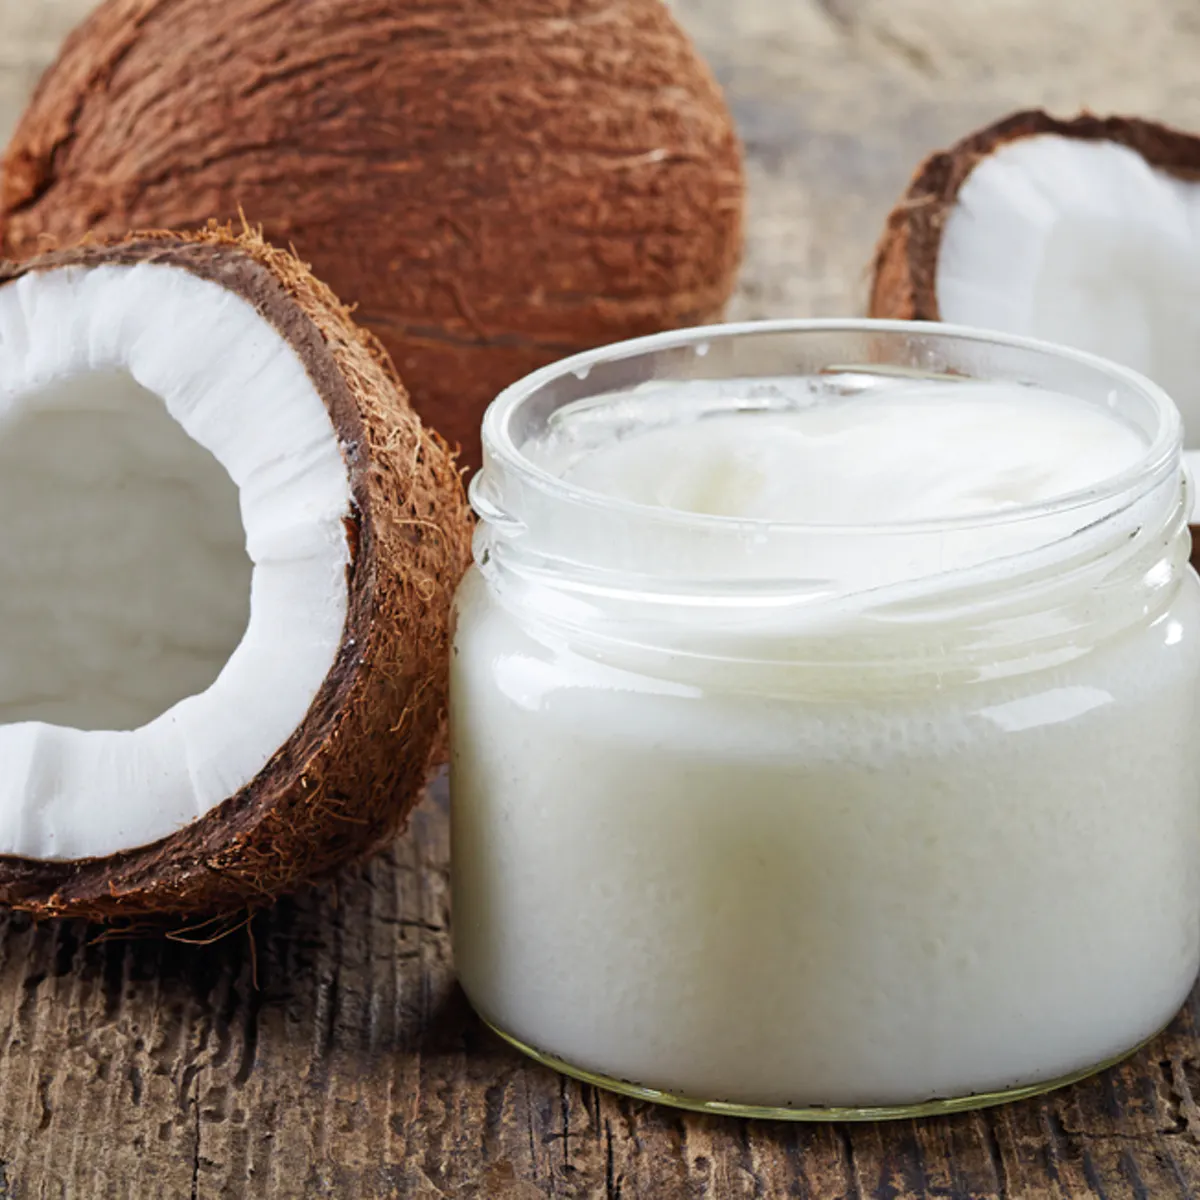 Coconut oil is an effective measure to prevent hair loss